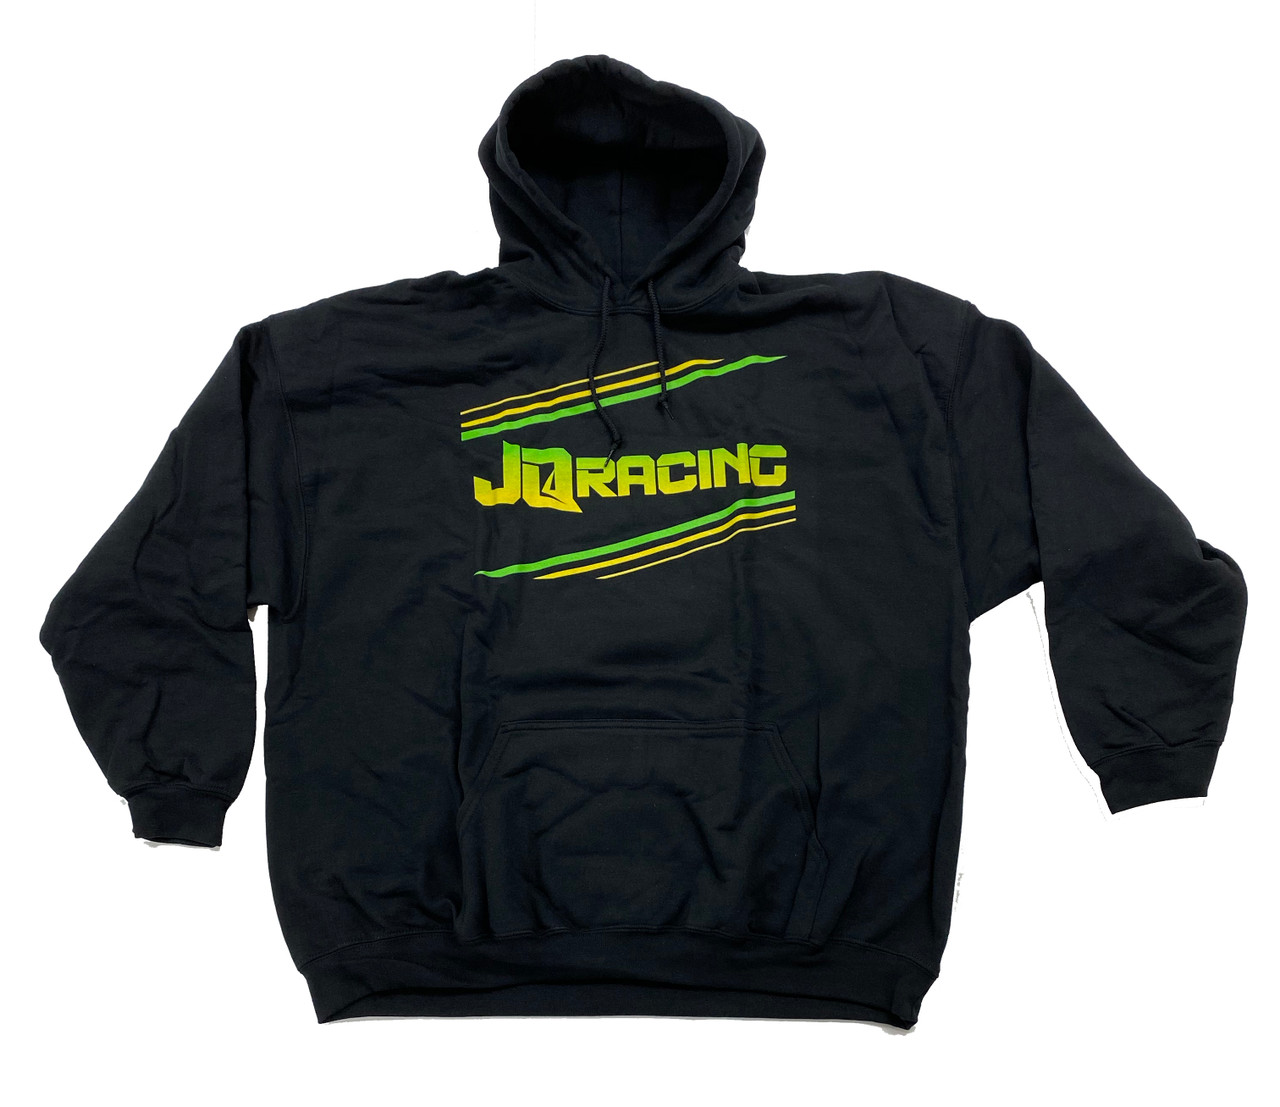 2020 JQ Racing Hooded Sweatshirt (Black) (JQ2020H)